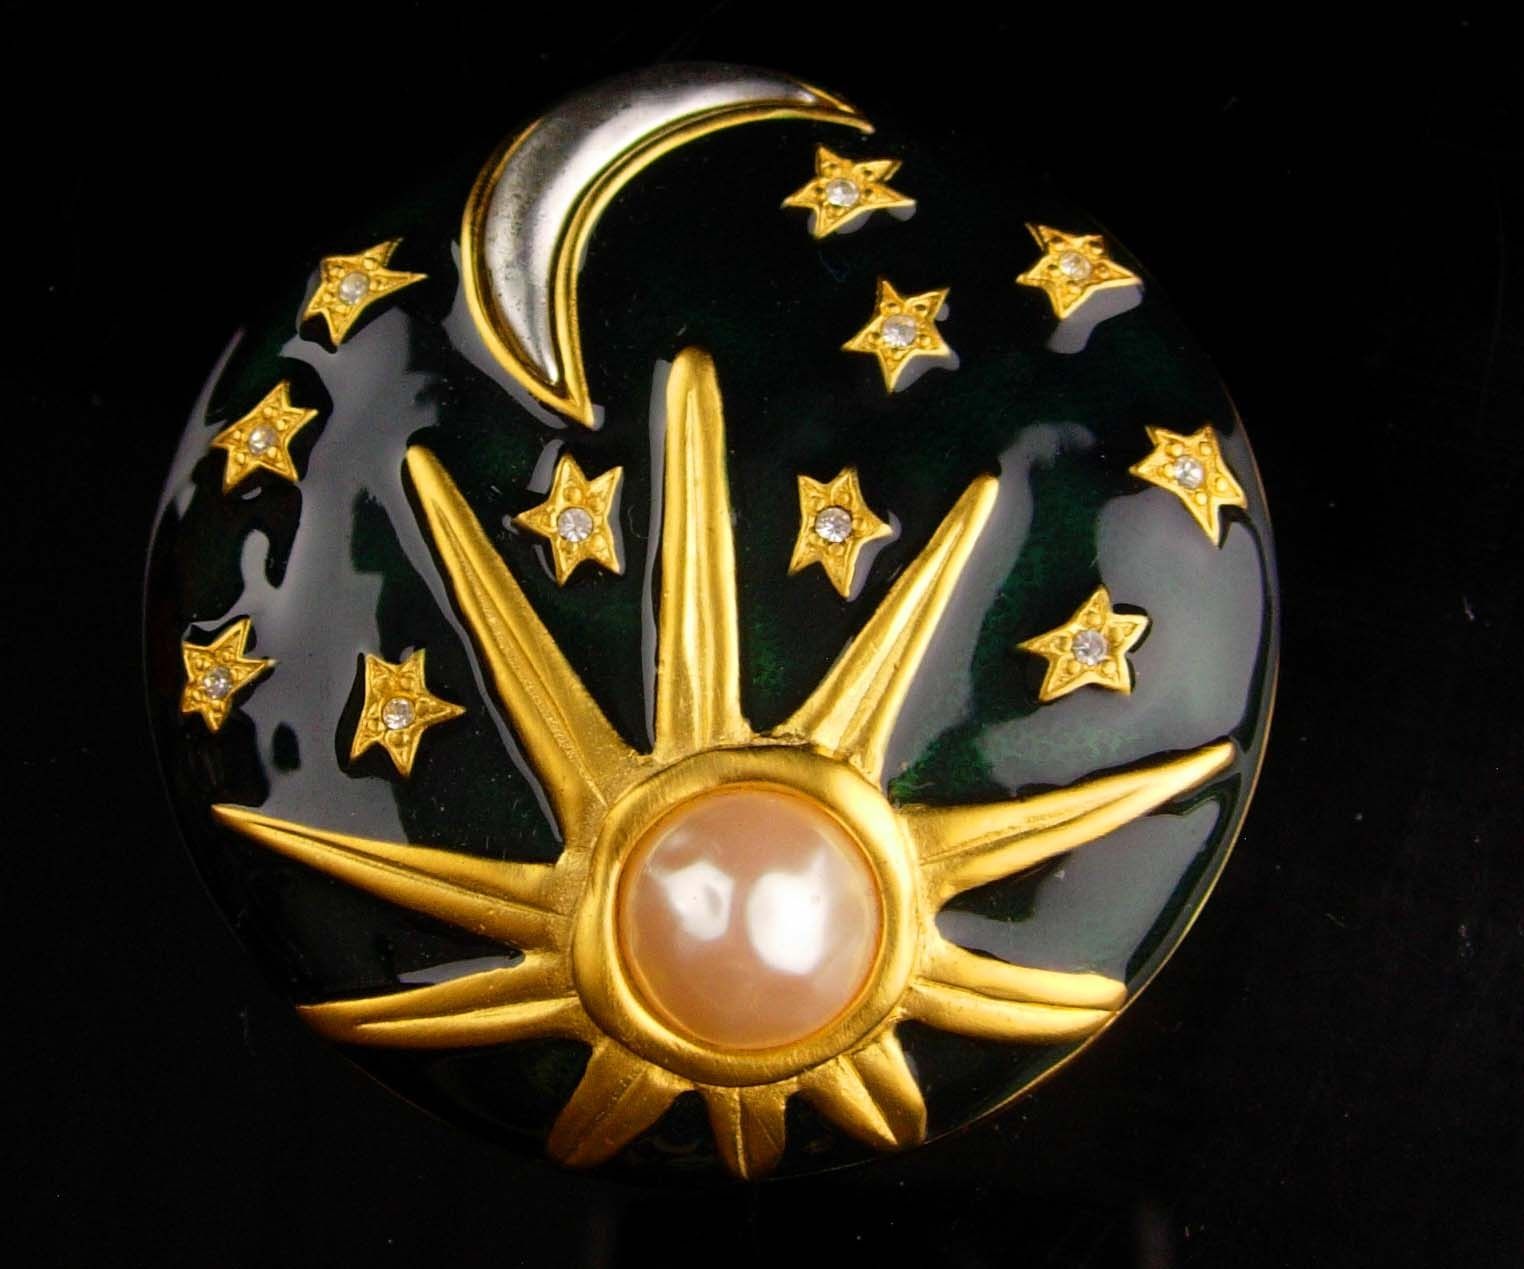 Karl Lagerfeld brooch - Sun Moon Stars Enamel Pin - Vintage couture jewelry - go image 3